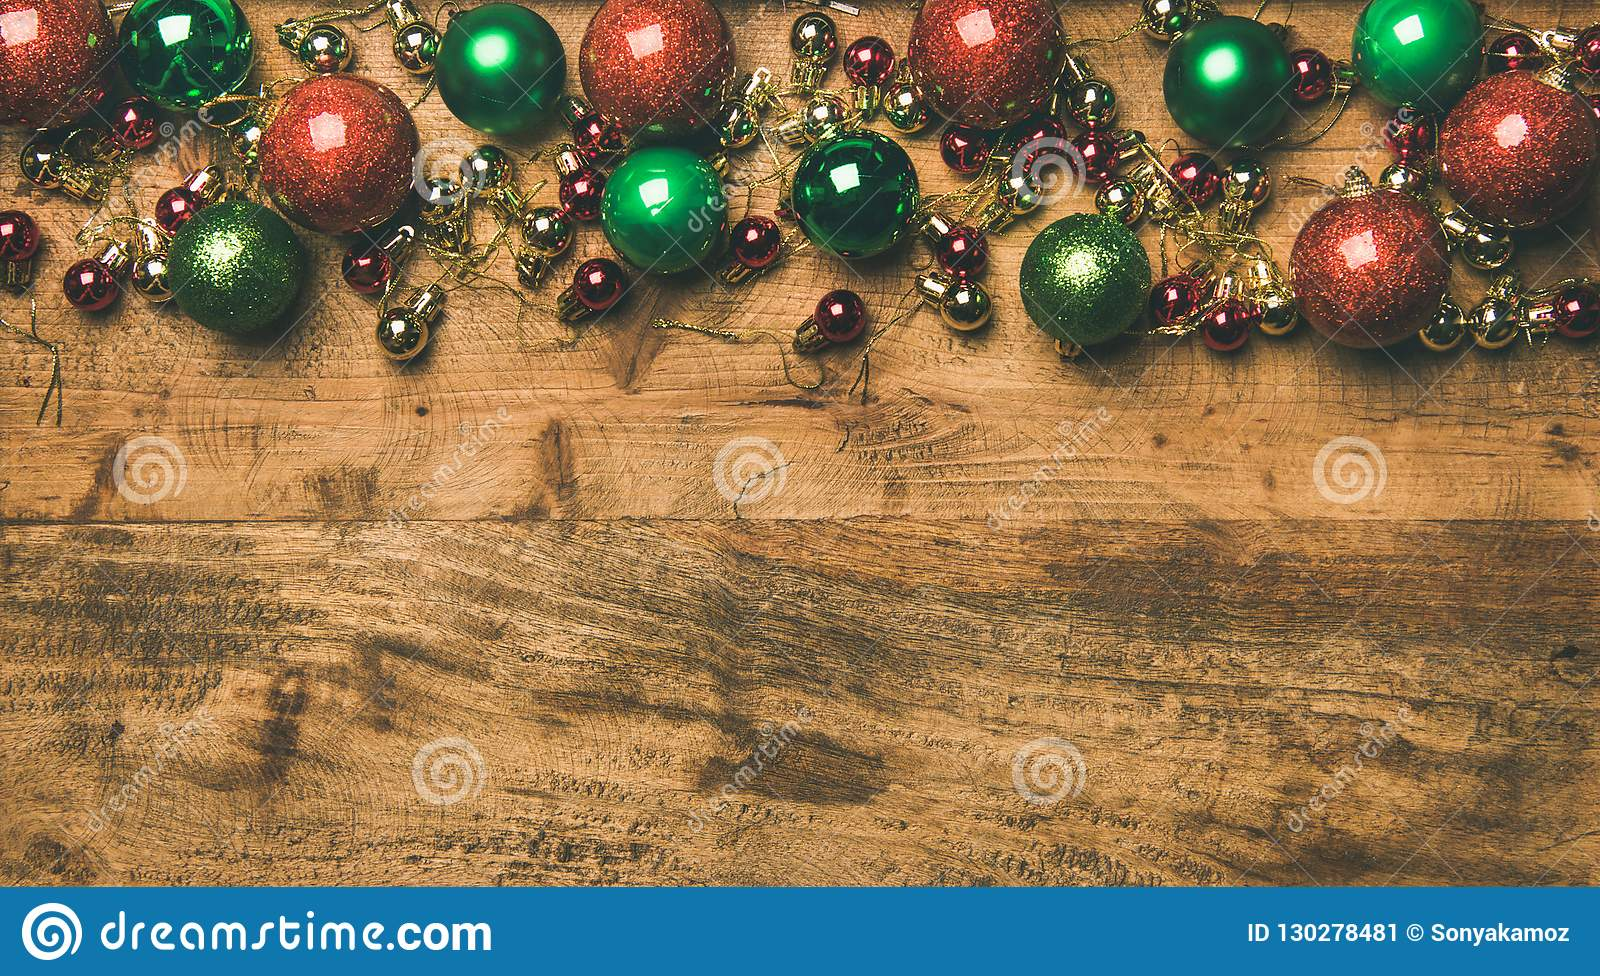 Colorful Christmas Tree Decoration Balls On Wooden